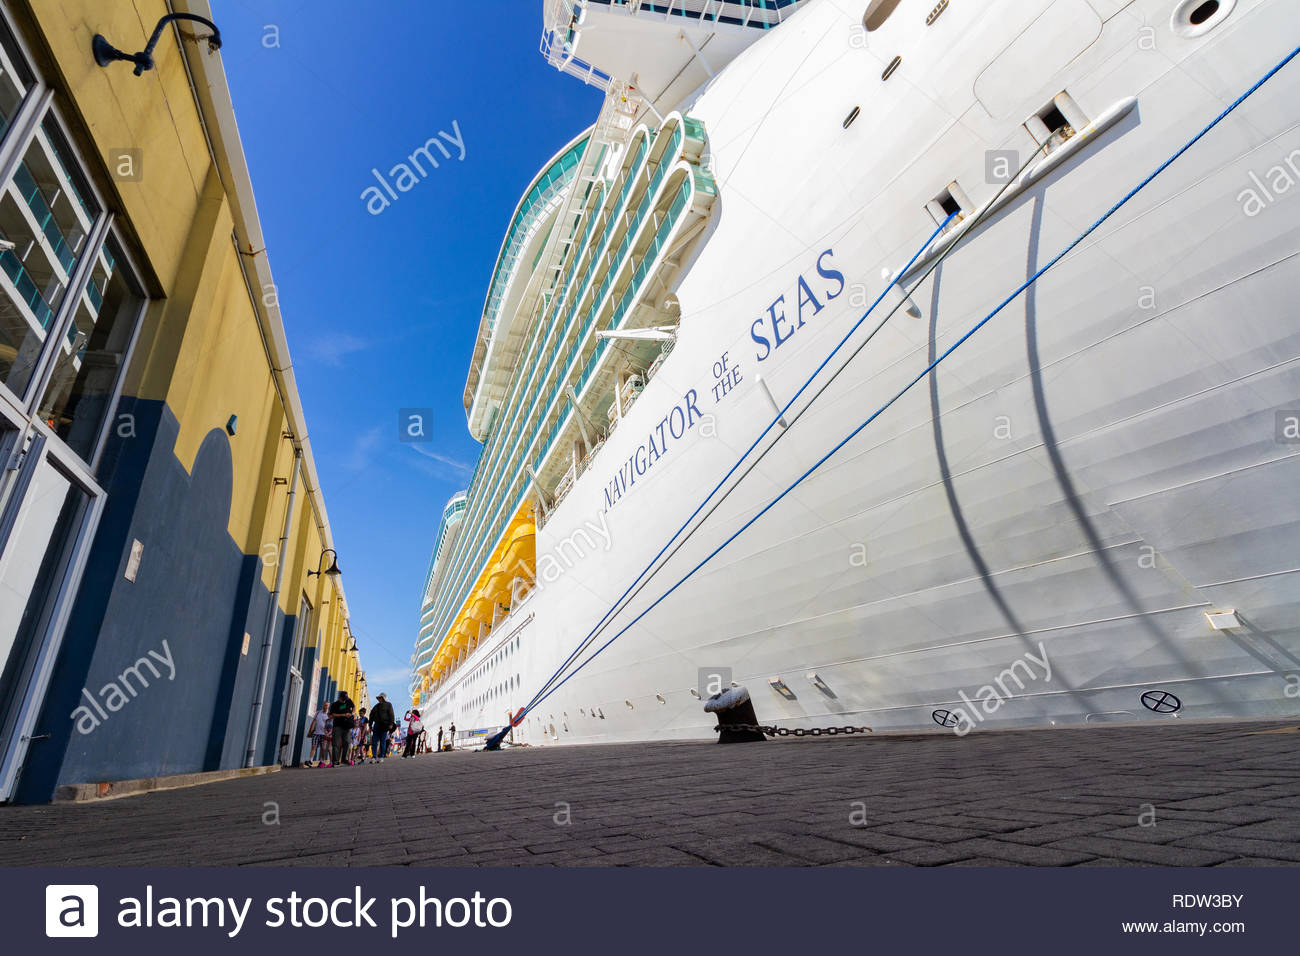 Gibraltar, United Kingdom - May, 15, 2017: Royal Caribbean cruise ship navigator of the seas docked at Gibraltar with tourist getting off to explore. - Stock Image